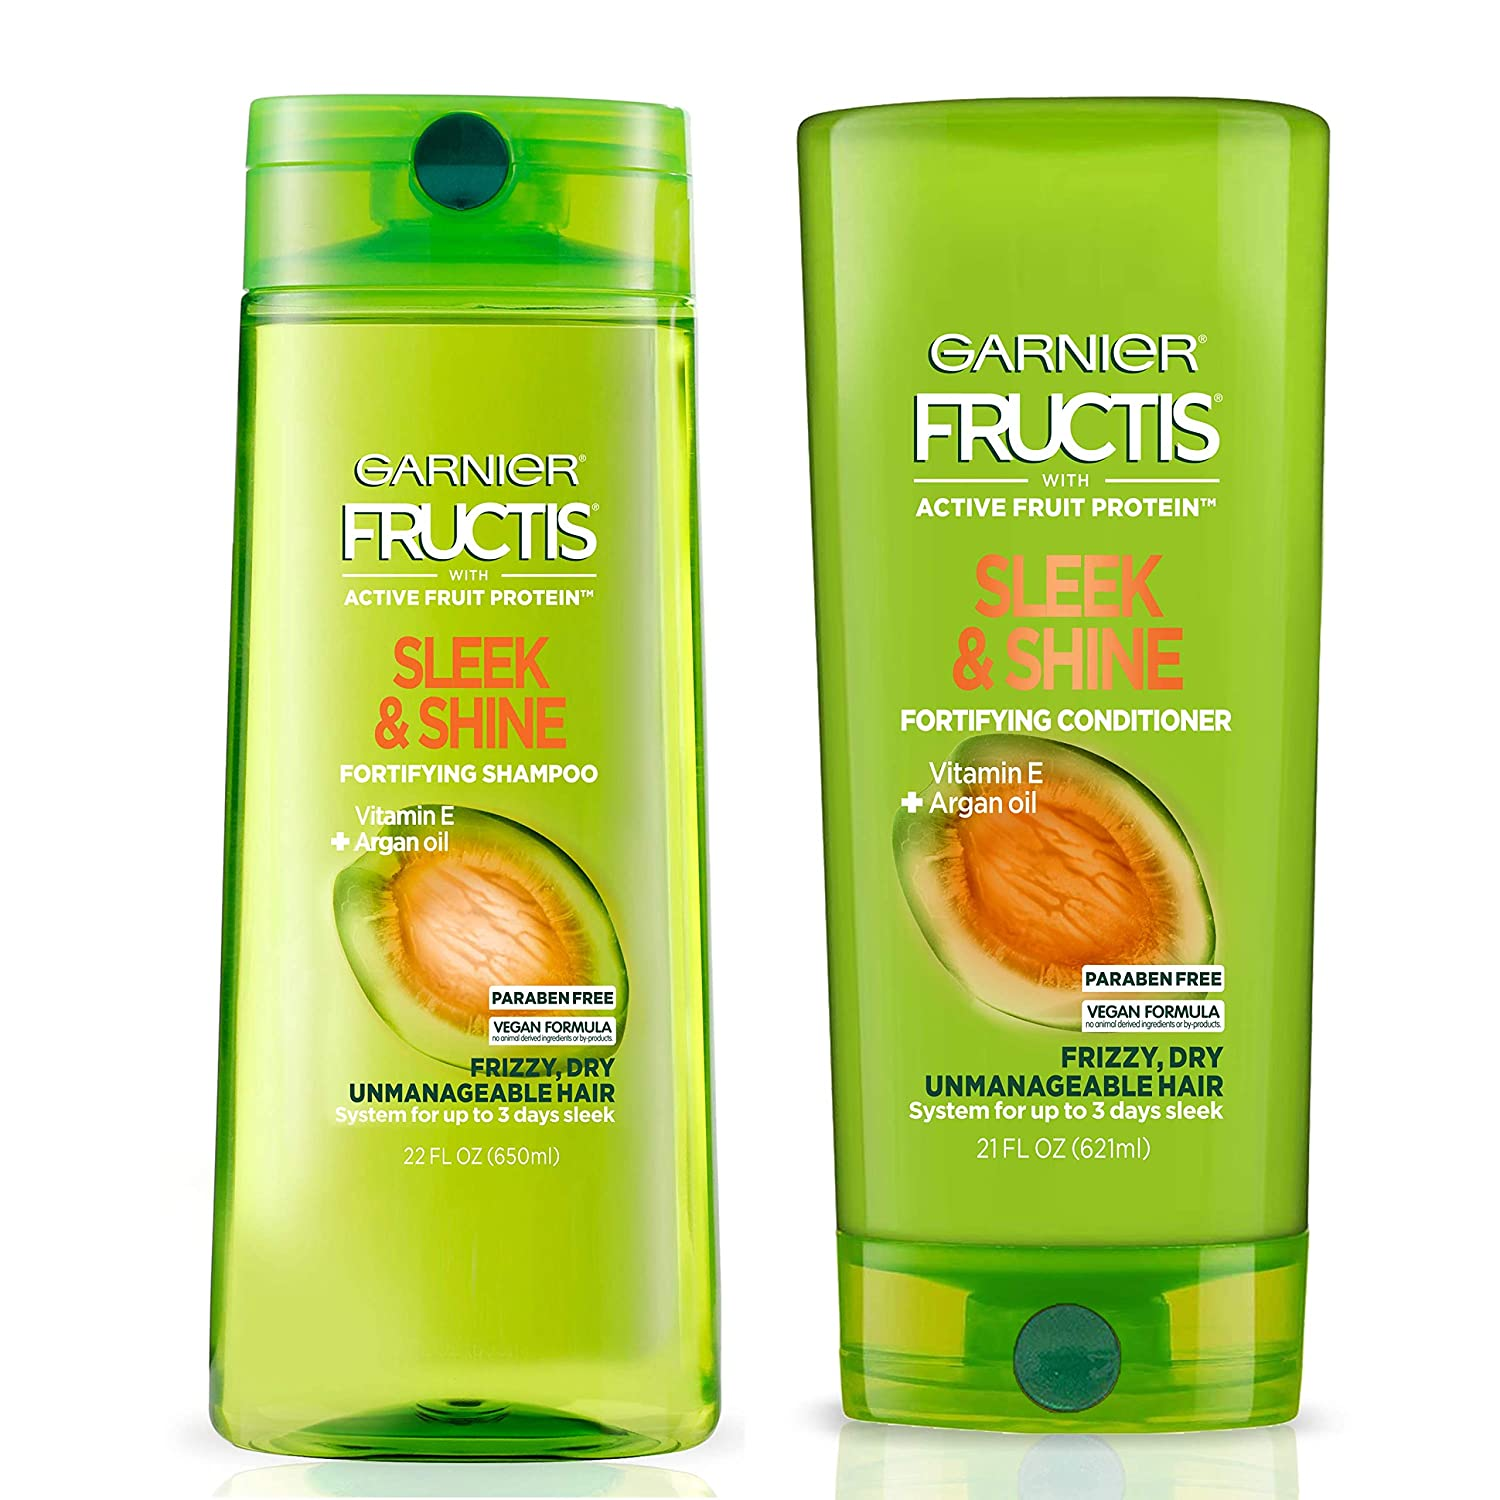 Garnier Hair Care Fructis Sleek & Shine Shampoo and Conditioner, For Frizzy, Dry Hair, Made with Argan Oil from Morocco, Paraben Free Formulas 43 Fl Oz